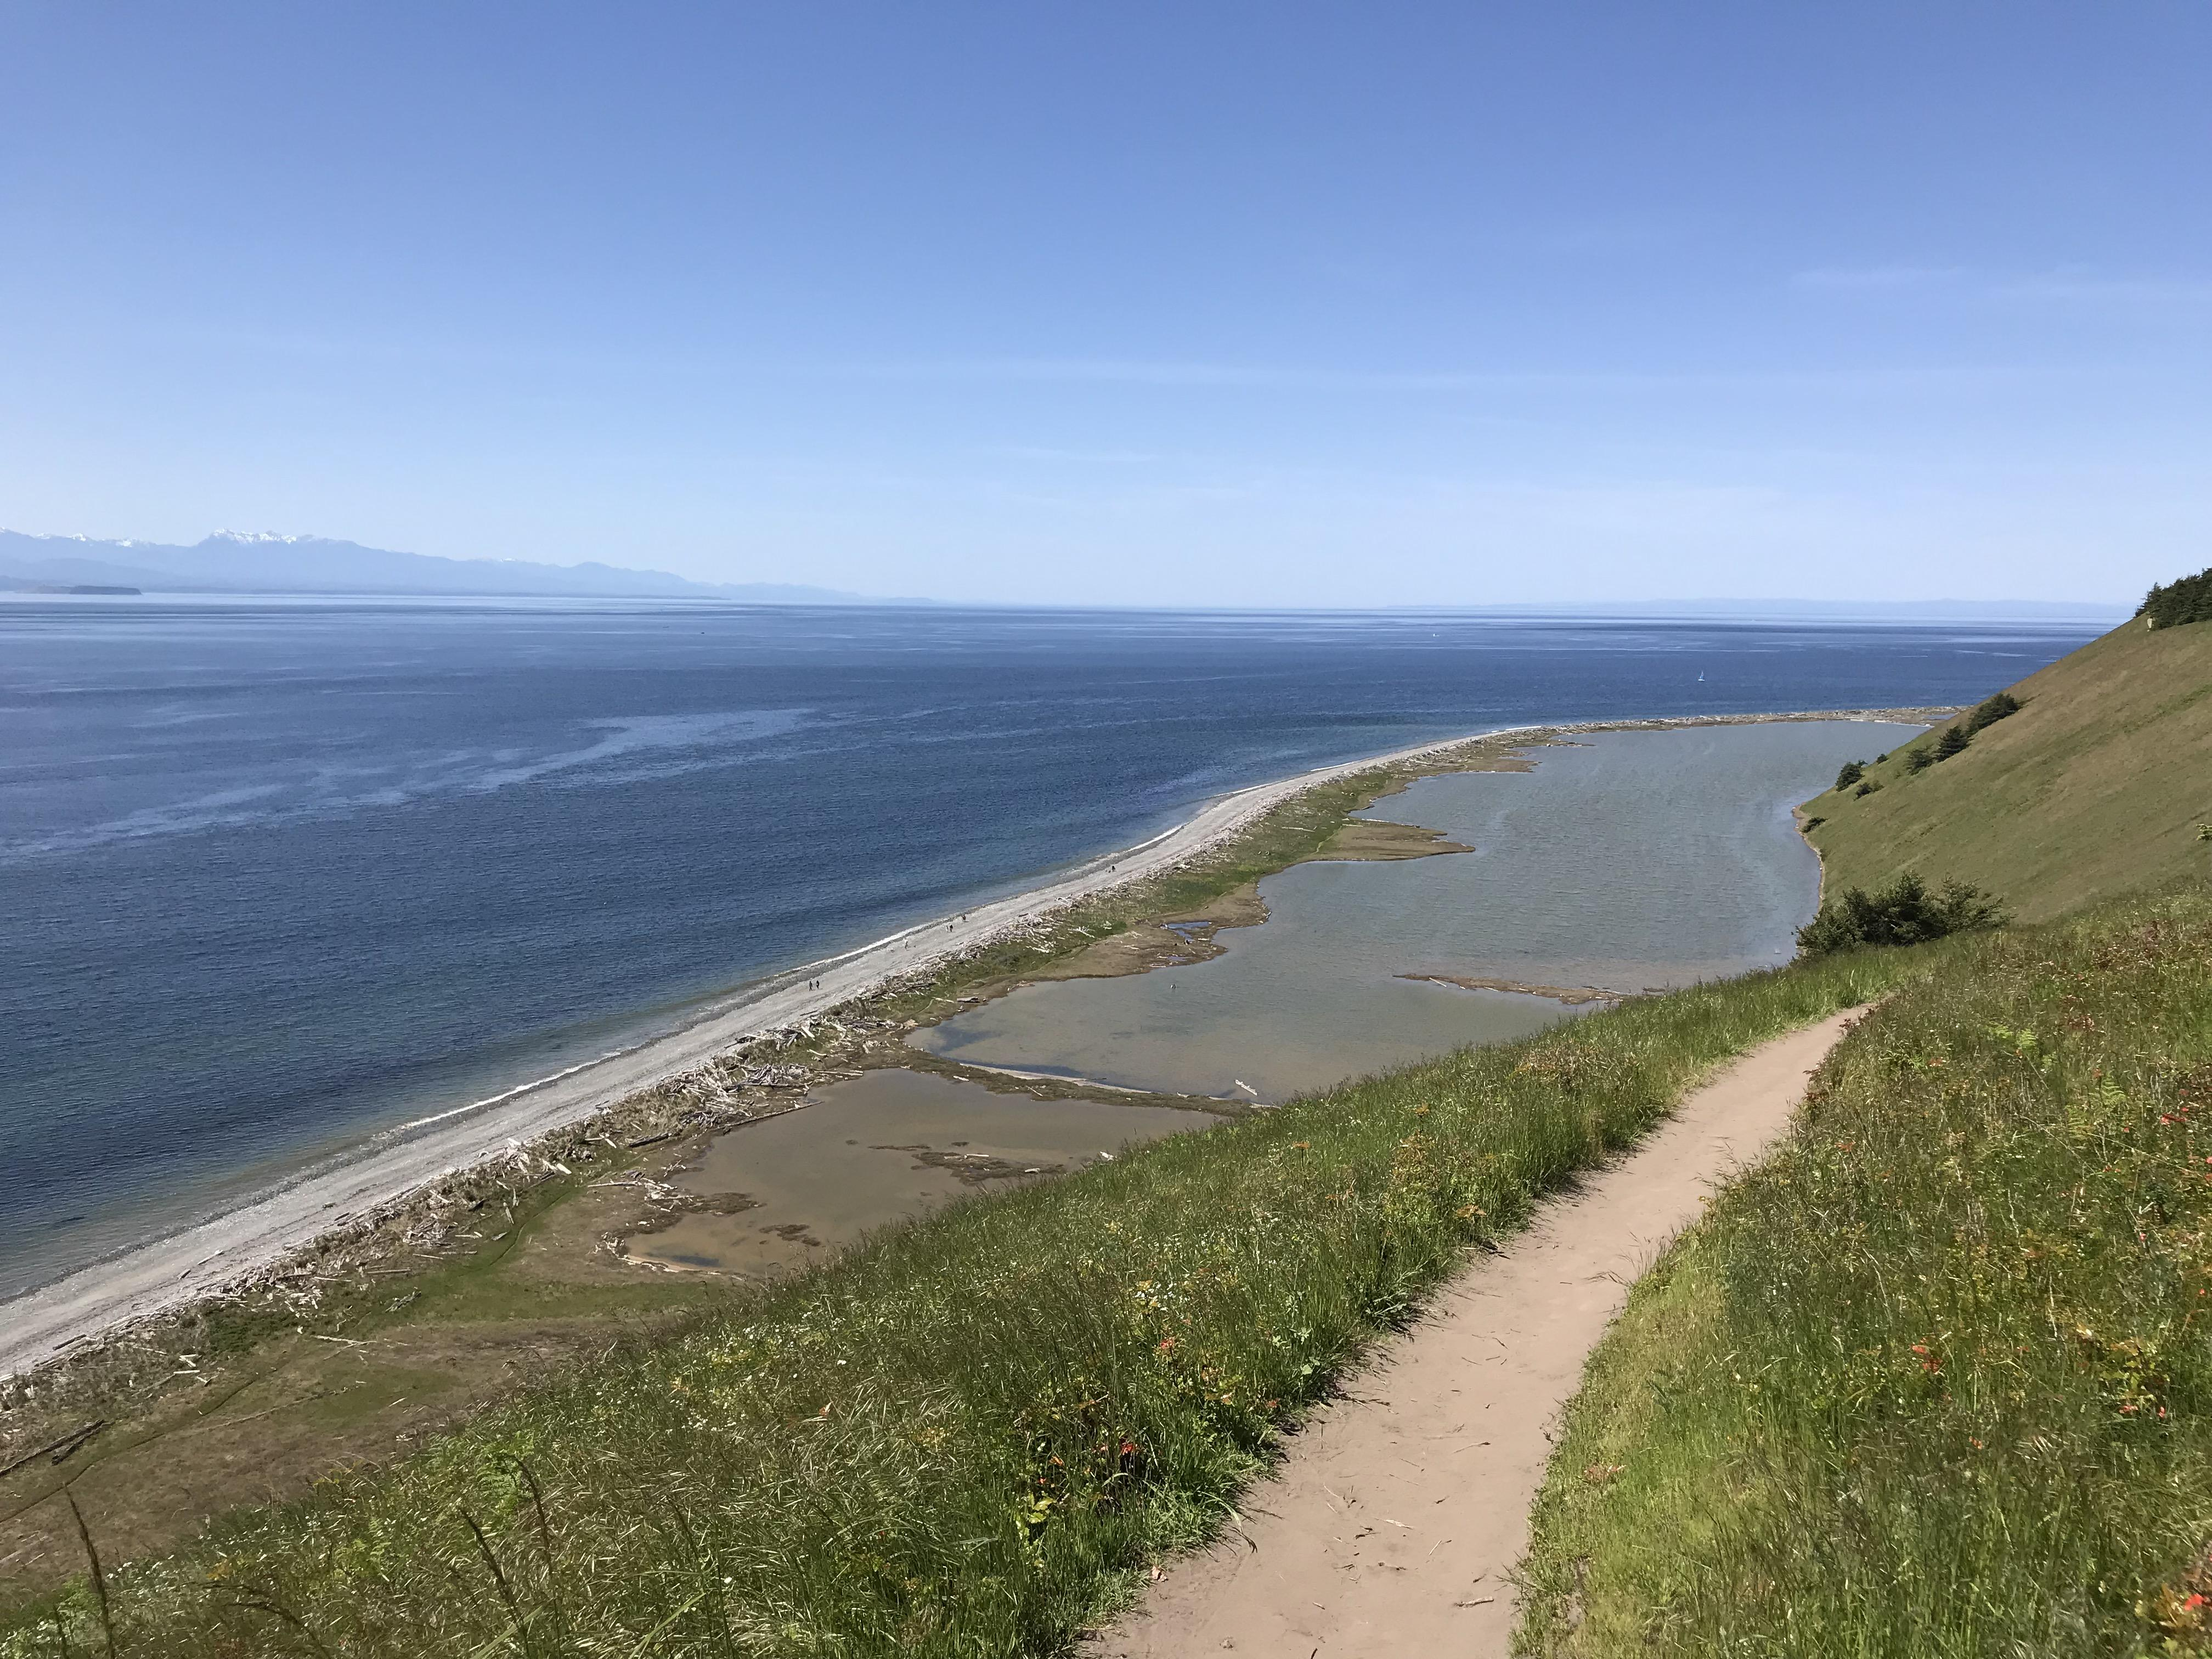 Camano Island State Park Weather Hiking At Fort Ebey State Park Whidbey Island Wa Campingandhiking